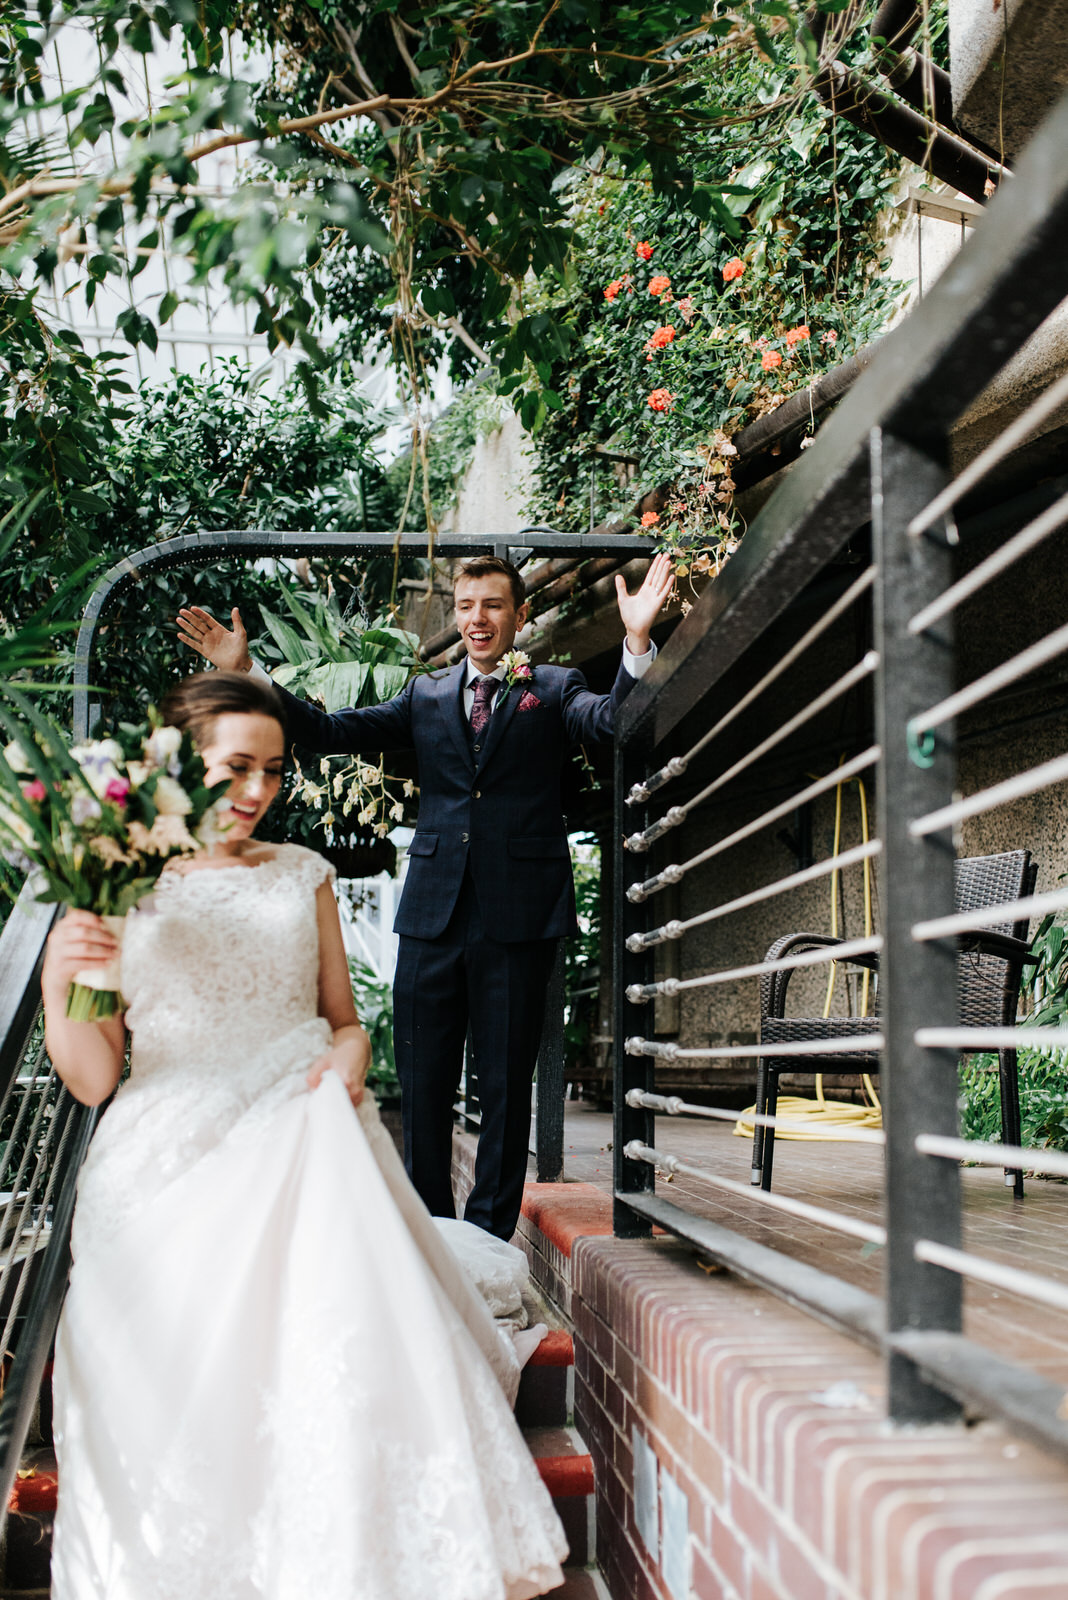 Bride walks down stairs in Barbican Centre as groom cheers from